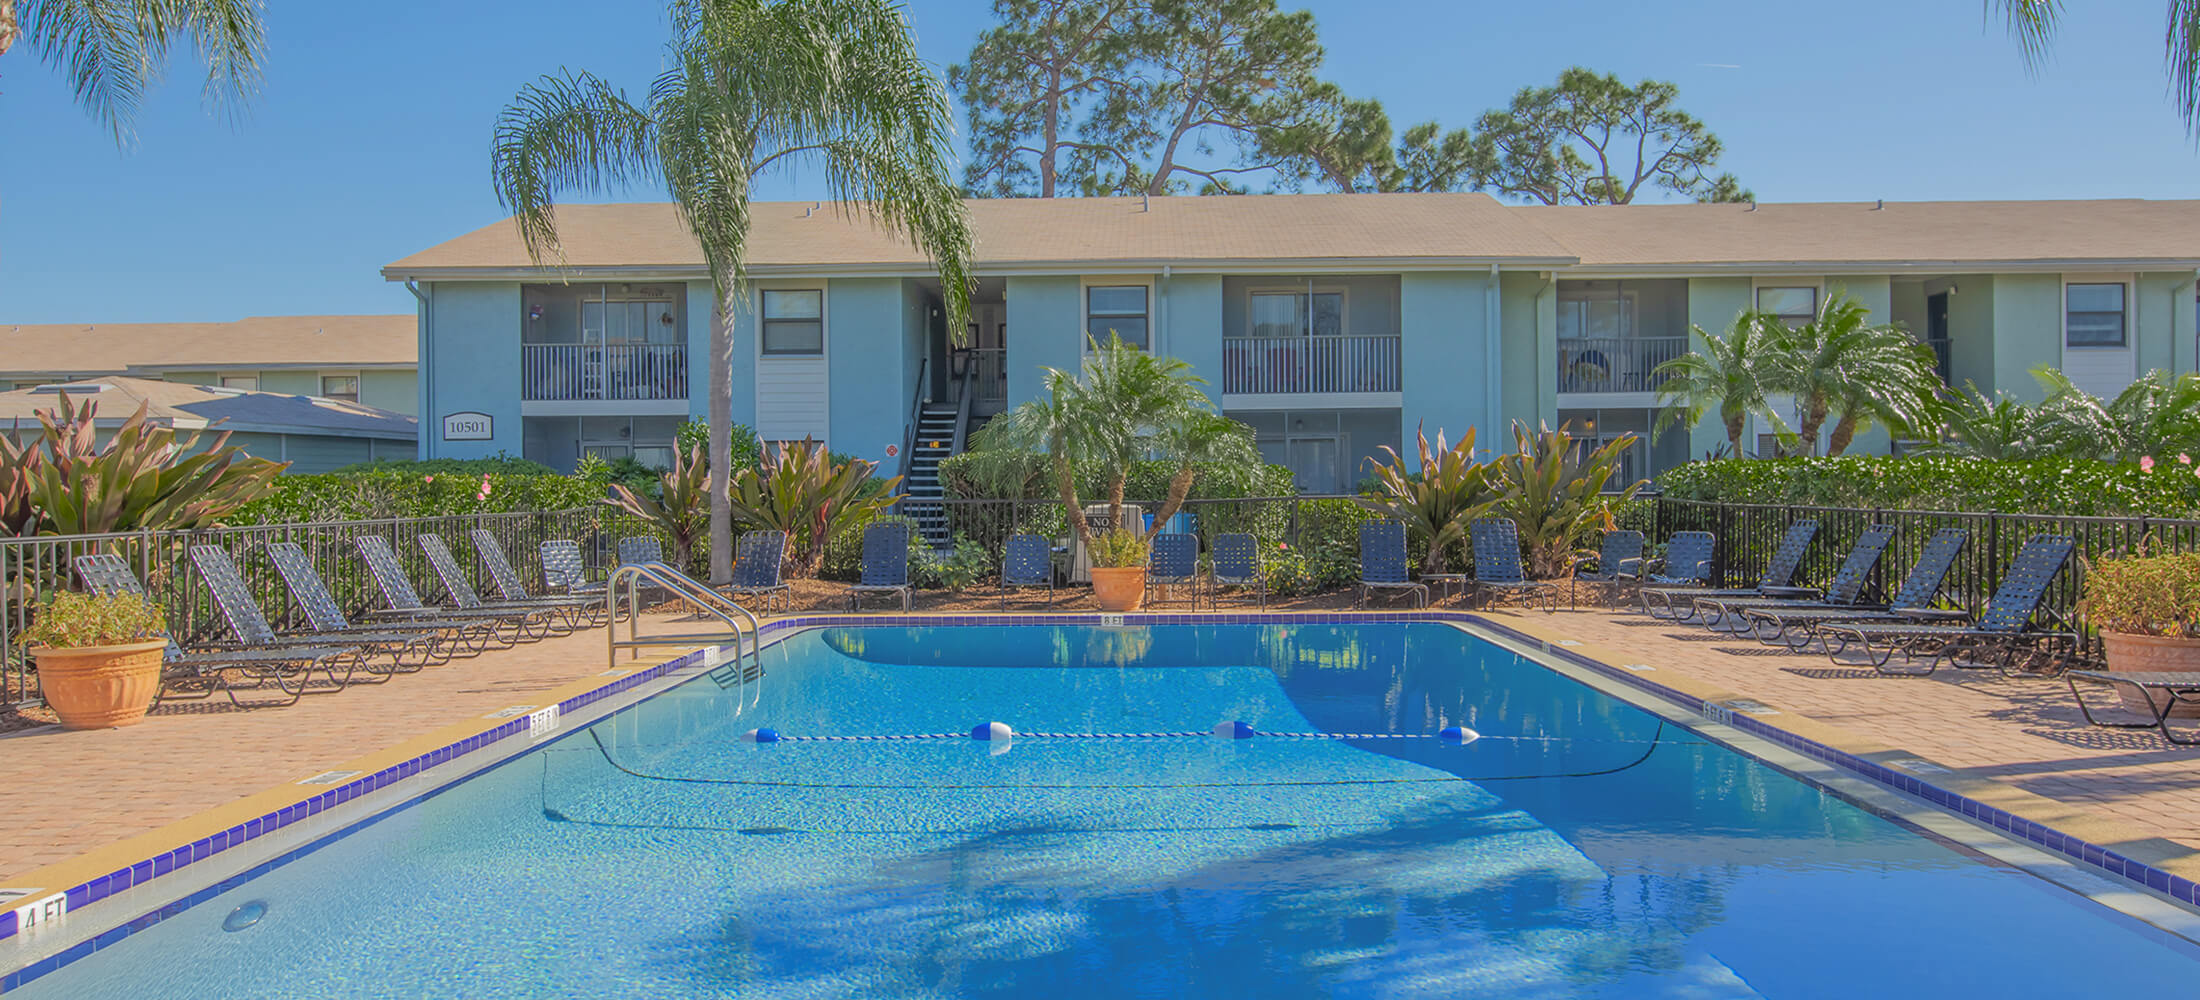 Welcome to Sienna Bay ApartmentsSienna Bay Apartments   Apartments in St  Petersburg  FL. 1 Bedroom Apartments St Petersburg Fl. Home Design Ideas